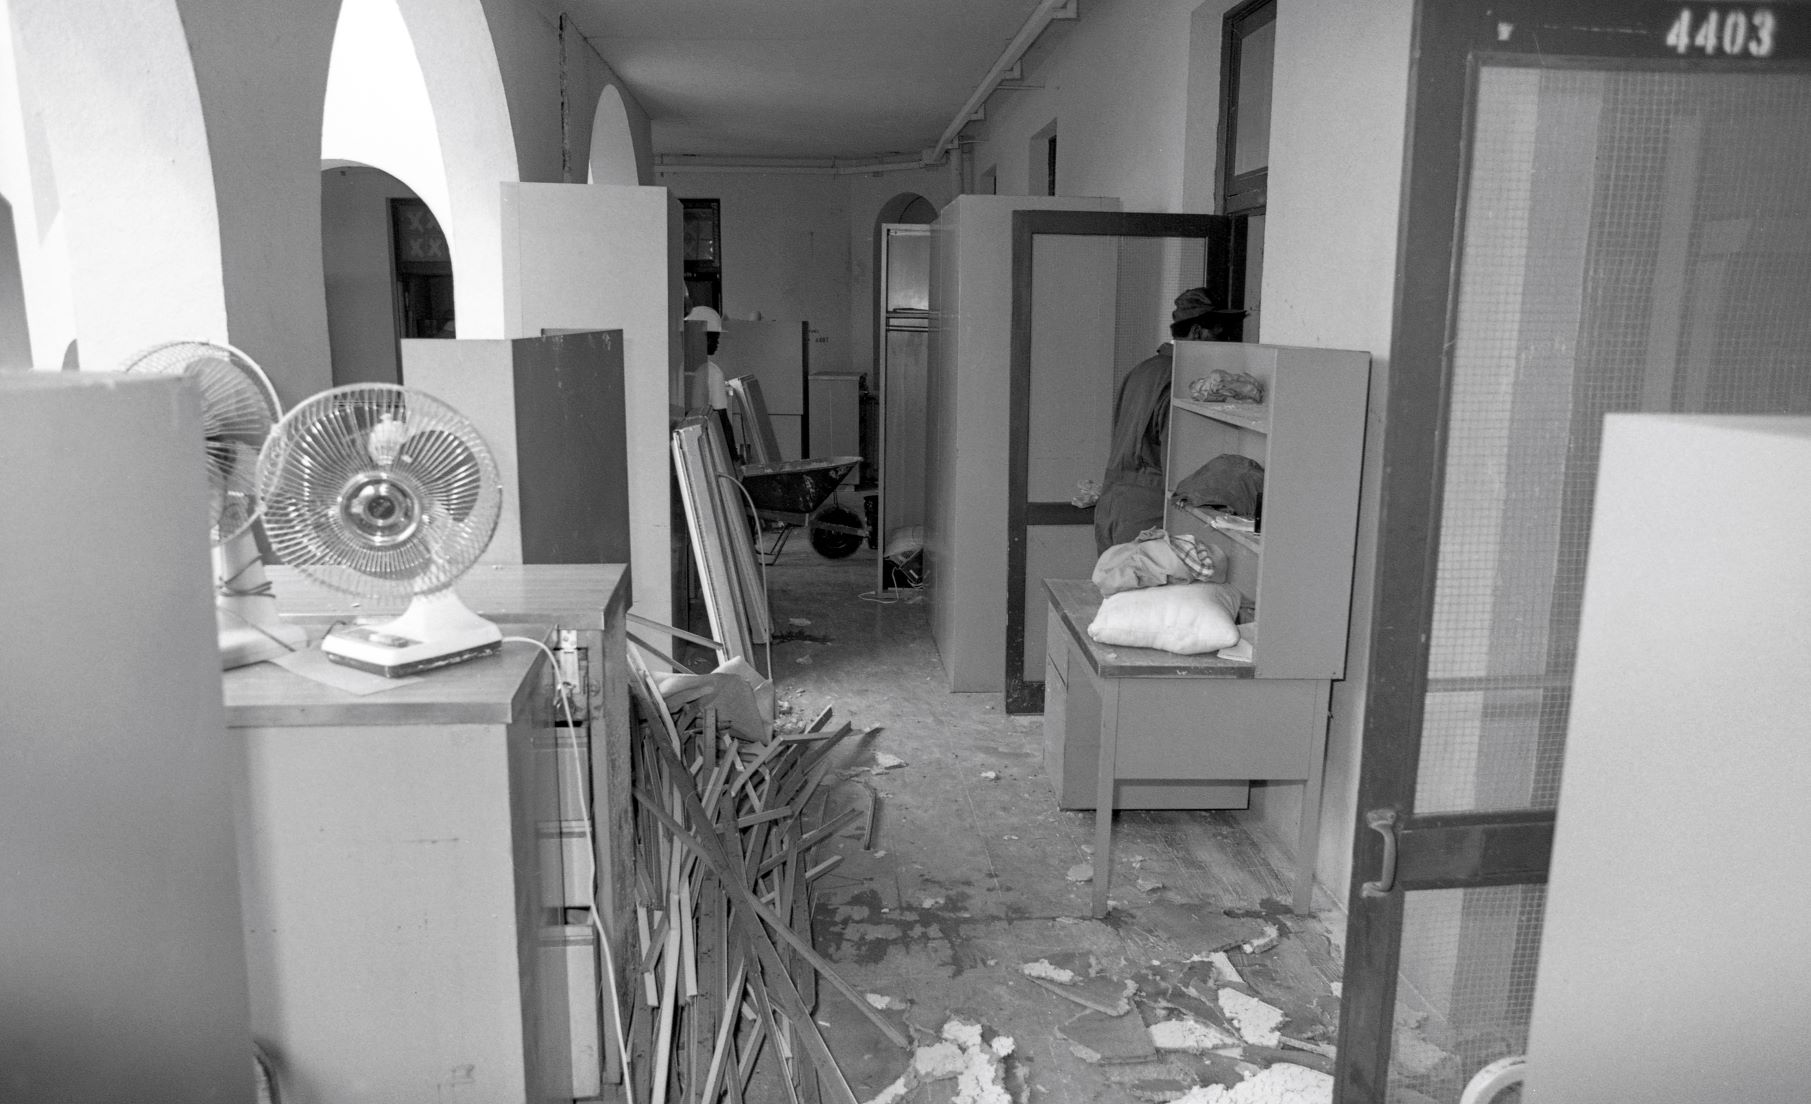 Damages and cleanup inside the barracks